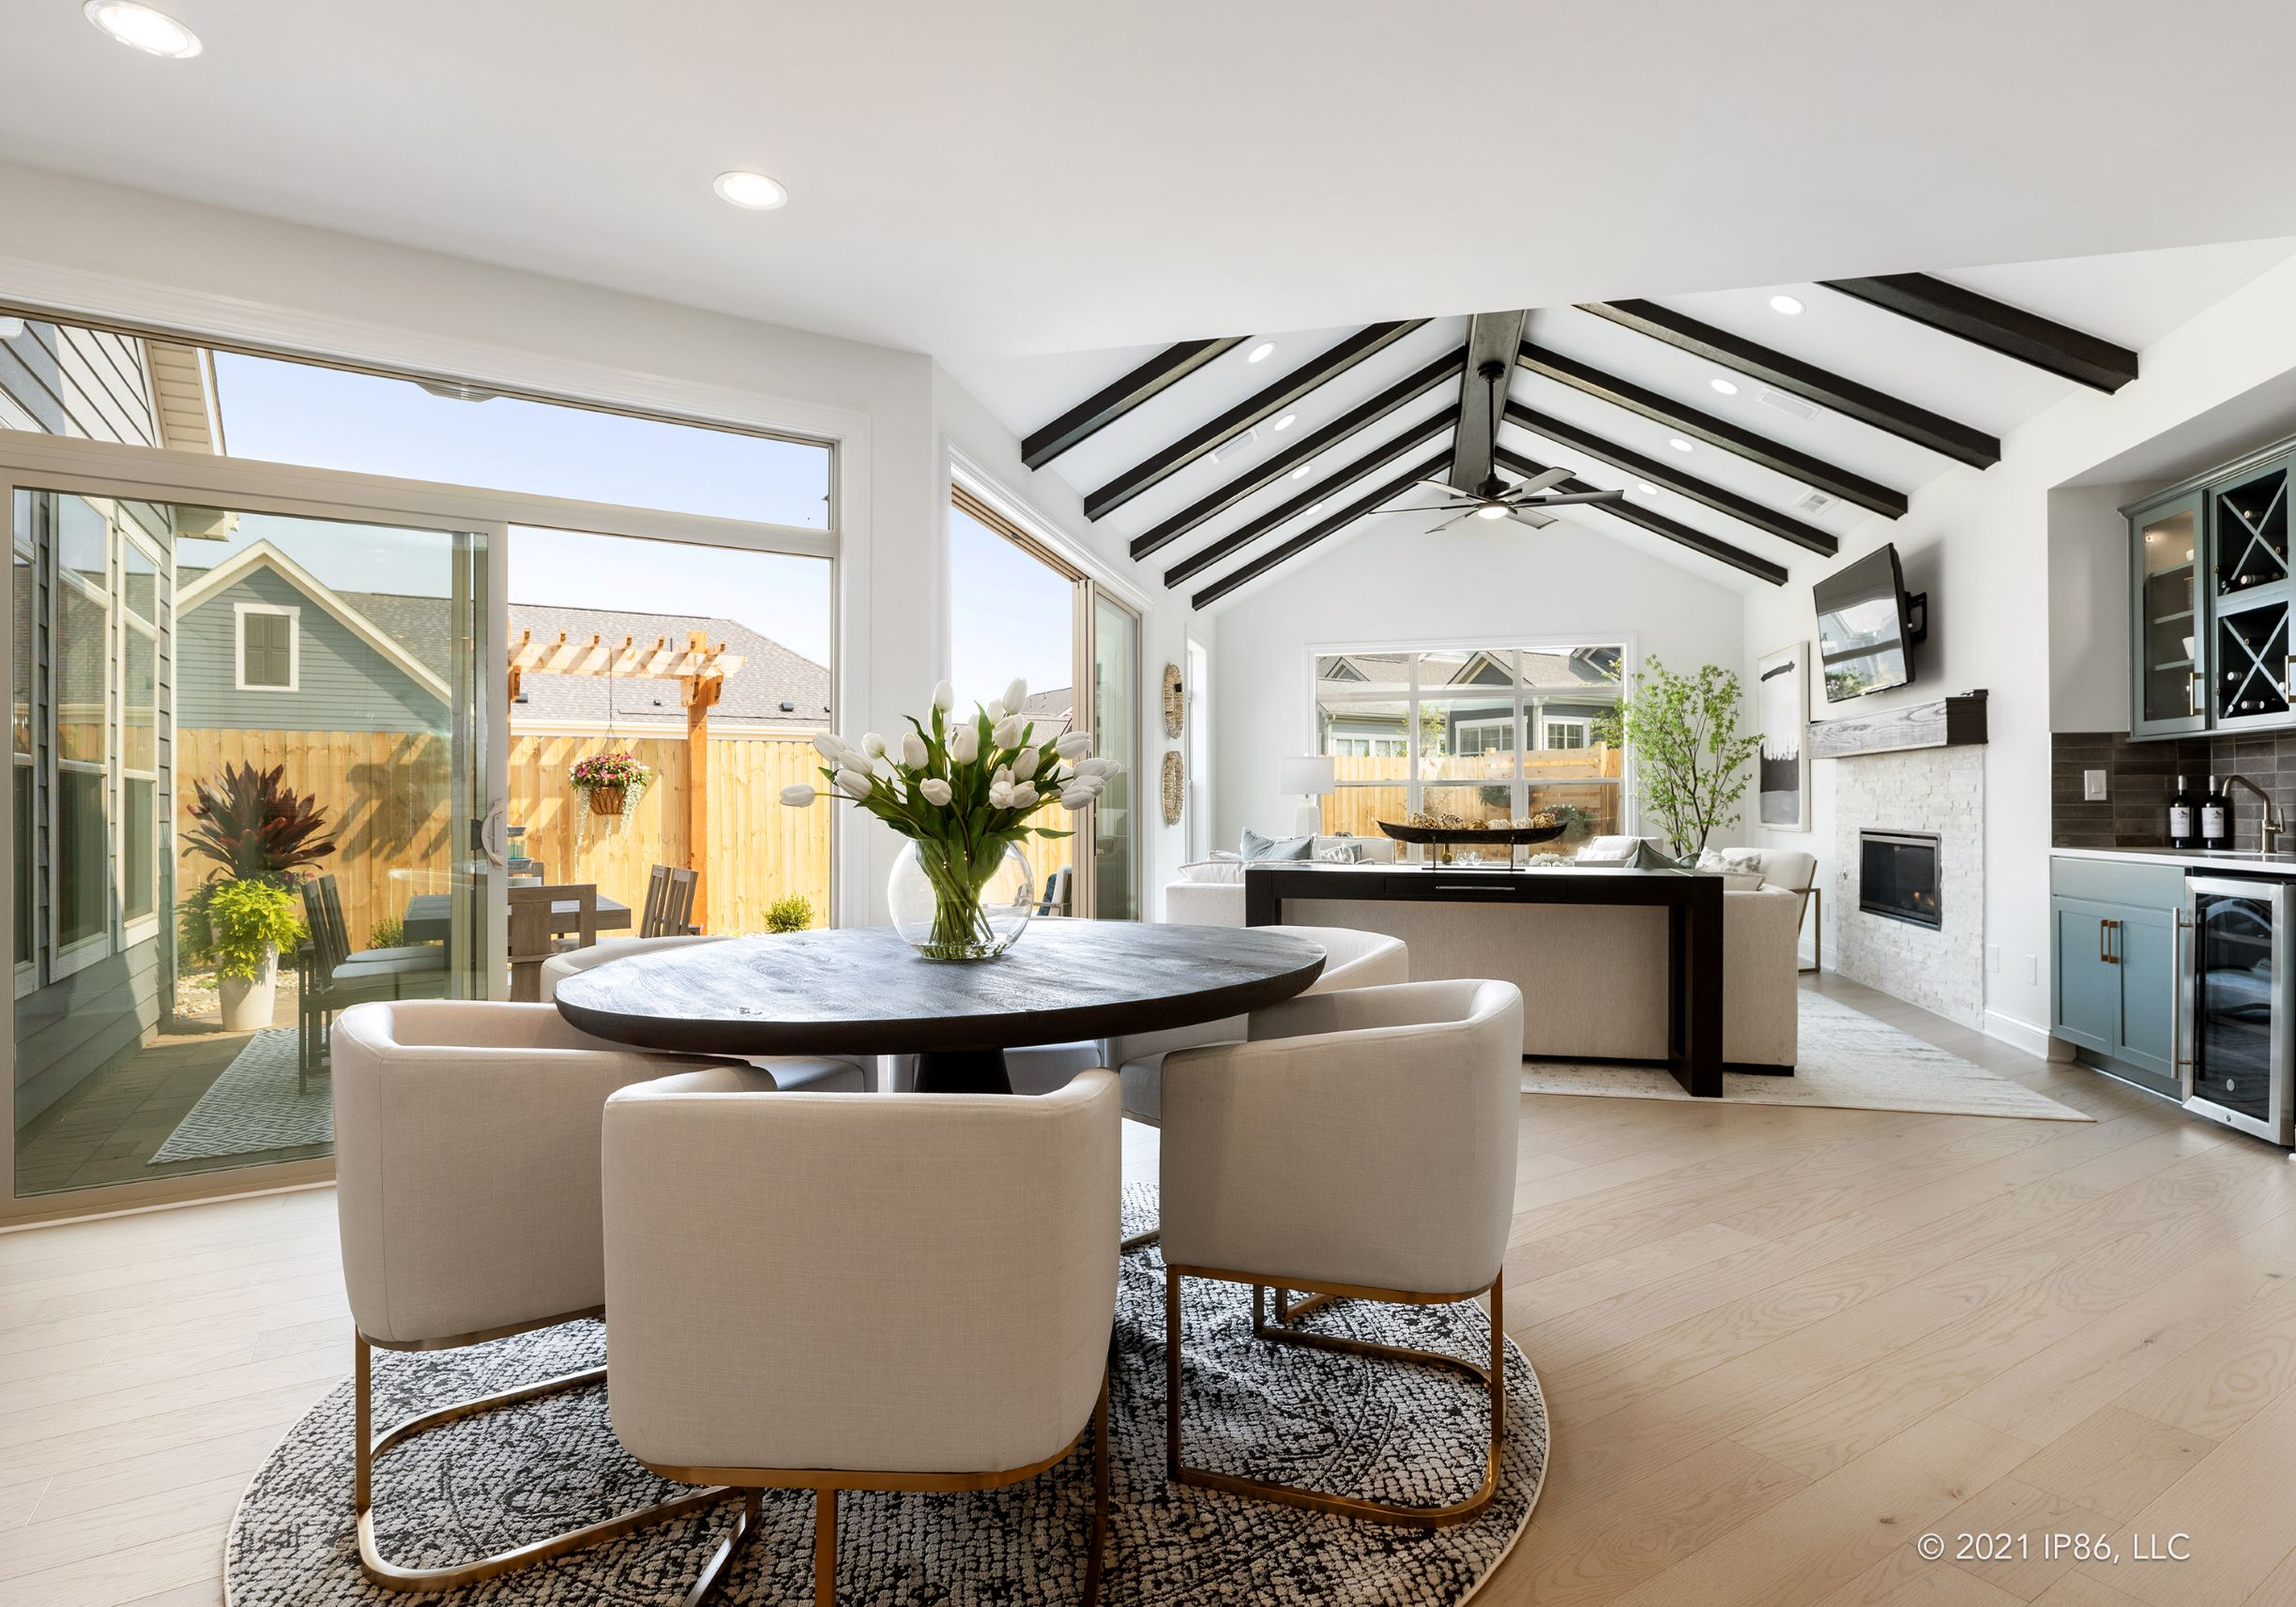 Dinning room looking onto beautiful great room with exposed beams and seamless indoor outdoor living.